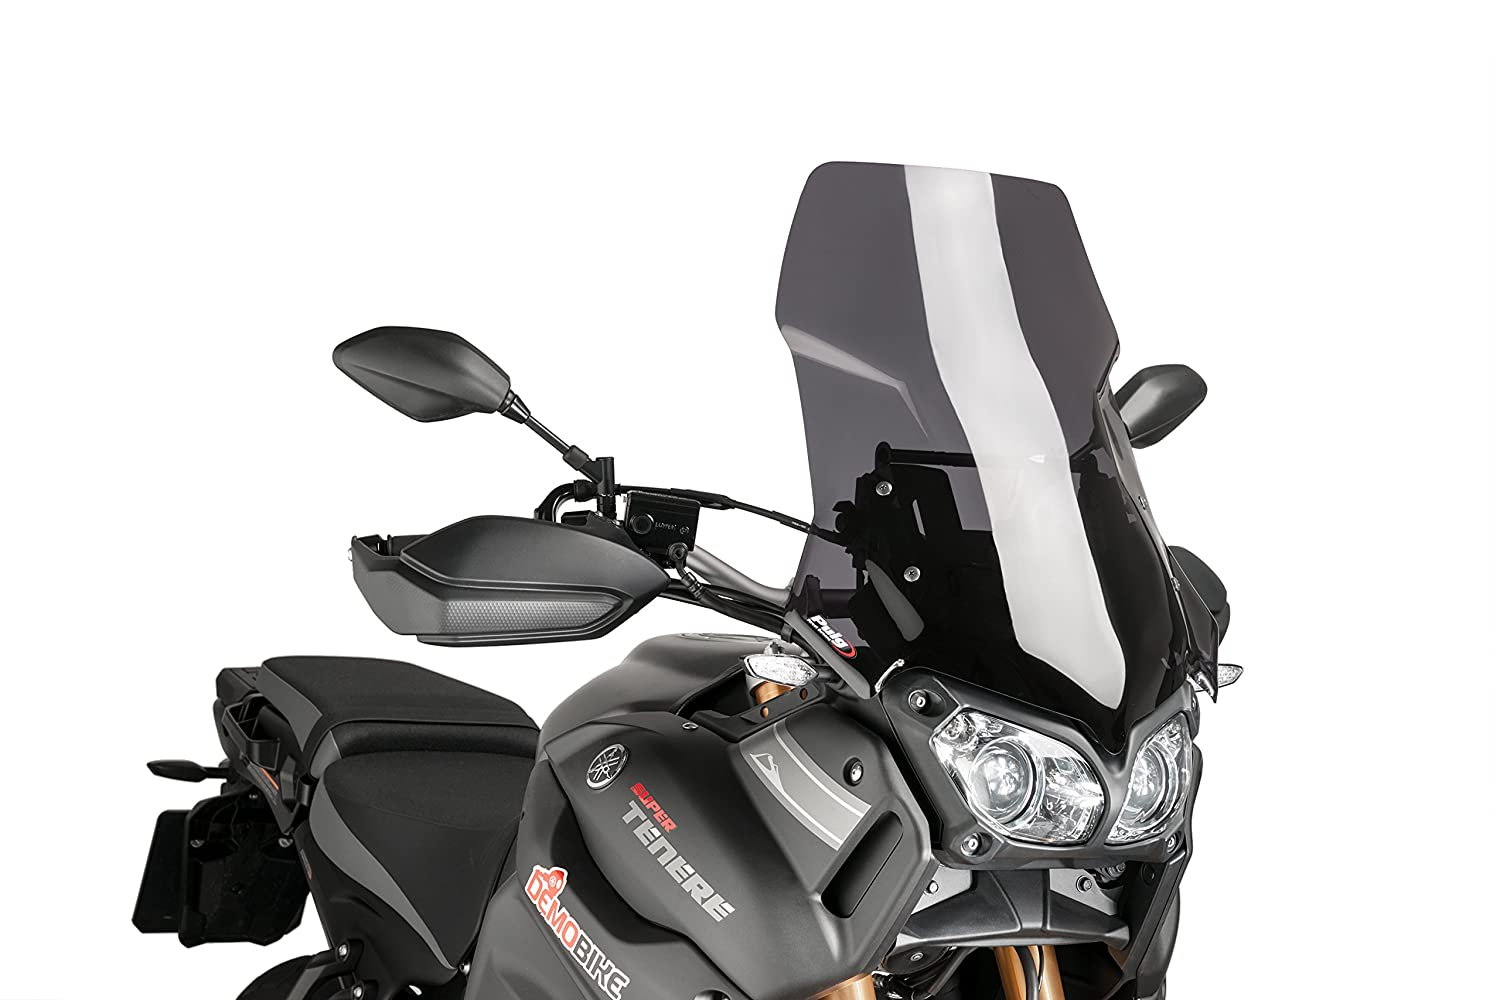 Belly pan Puig Yamaha MT-09 2014-2015 , MT-09 TRACER 2015 matt black (Akrapovic) Puig Tec 7541F